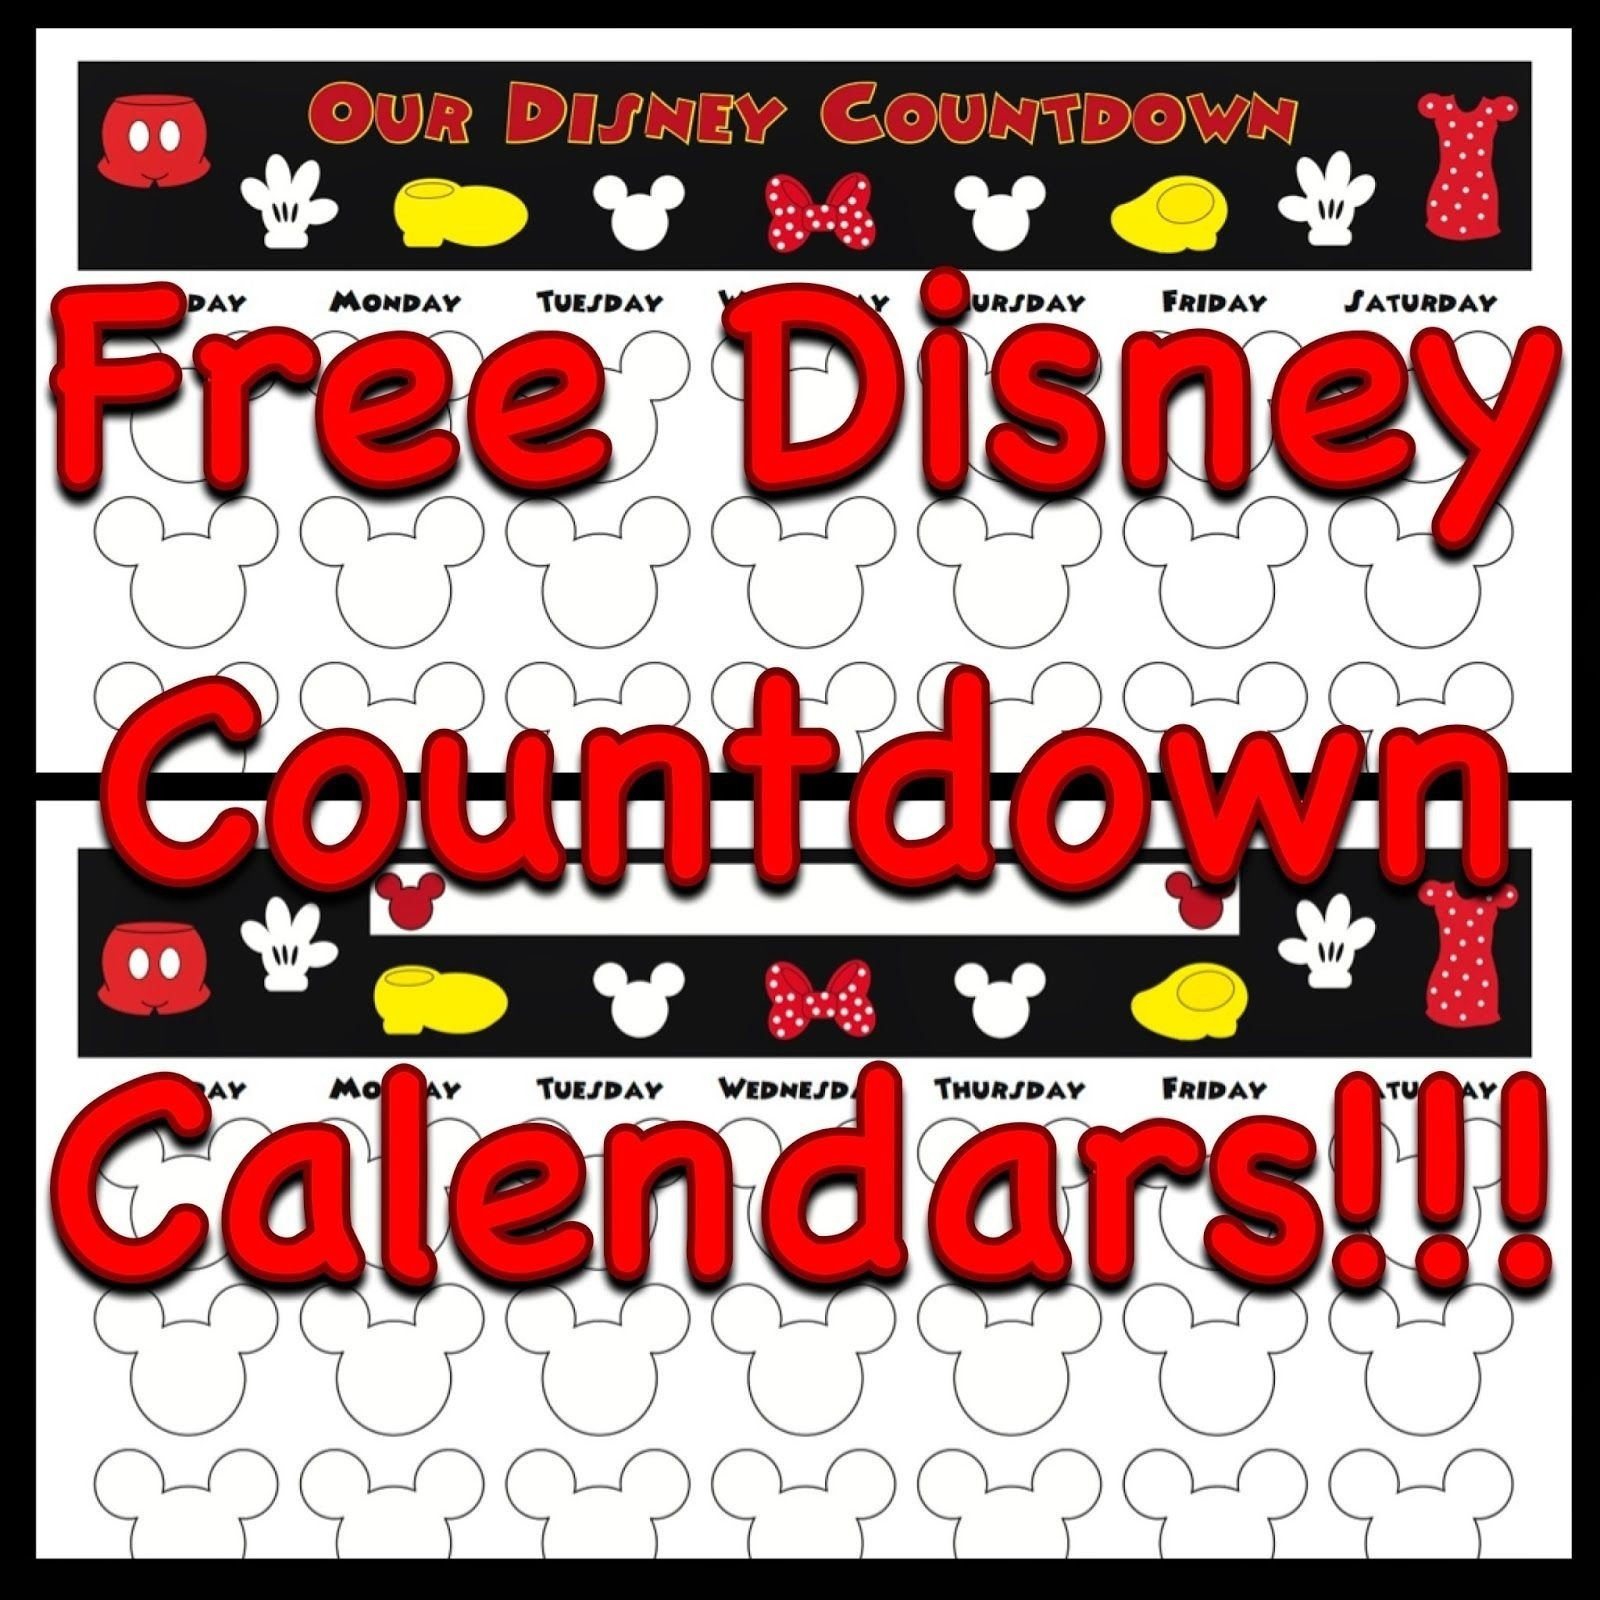 Free, Printable Countdown Calendars To Use For Your Next Disney Trip  Free Printable Vacation Countdown Calendar